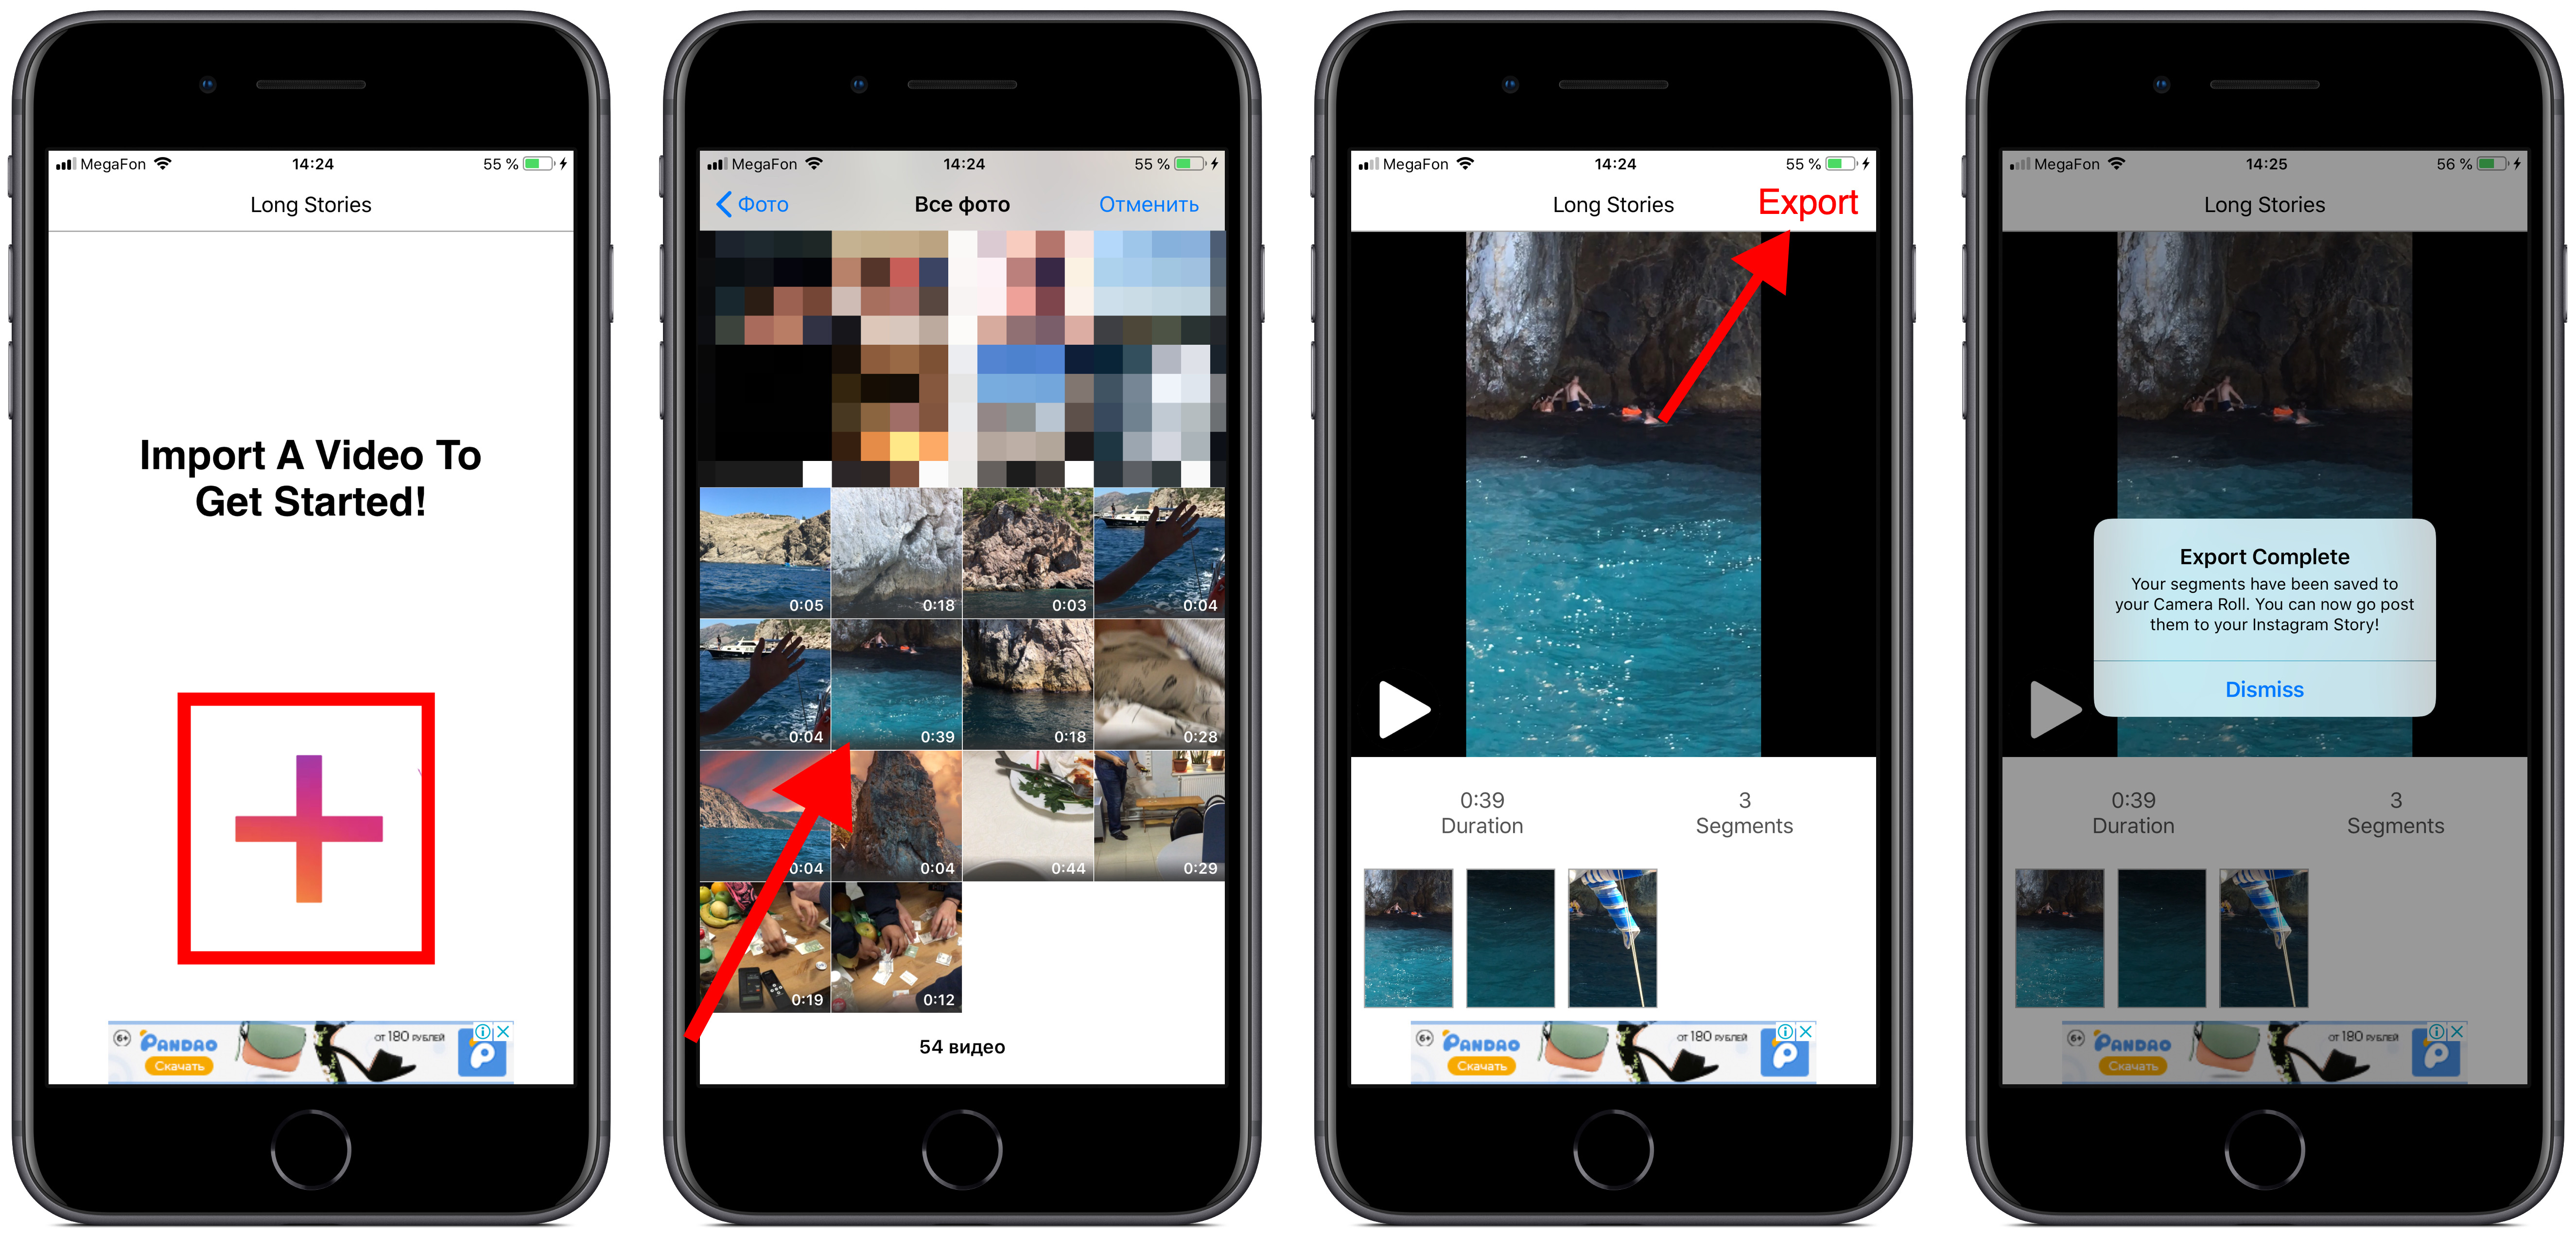 How to publish long-form videos in Instagram Stories